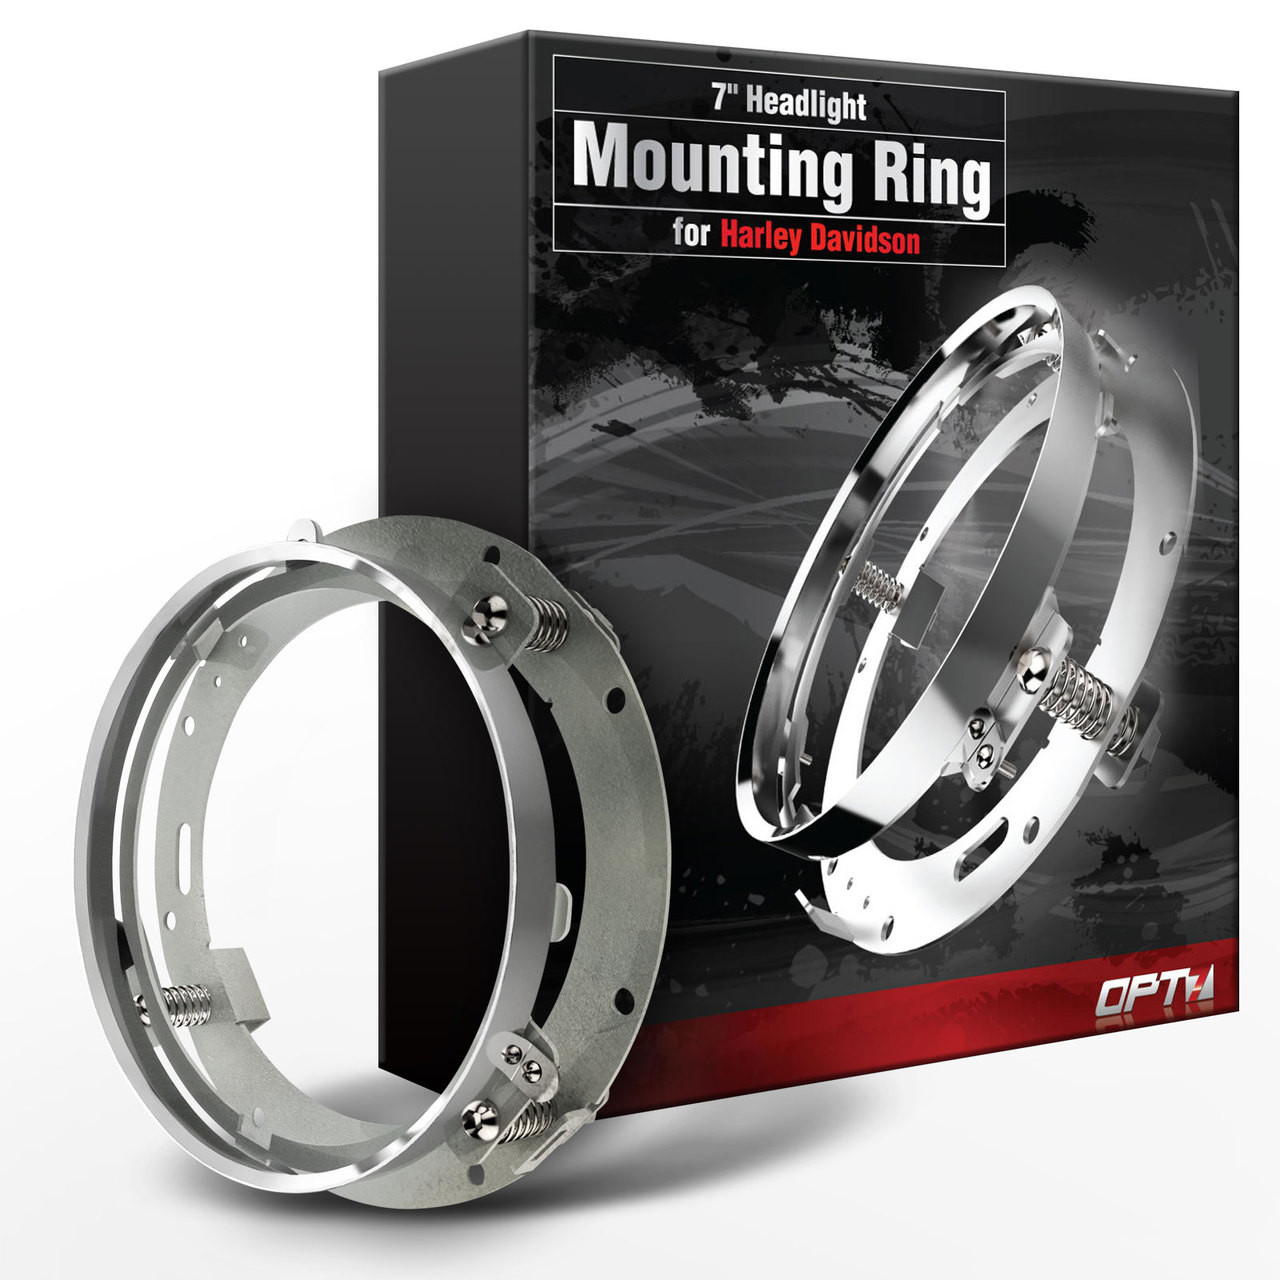 7 inch led daymaker headlight mounting ring bracket for harley davidsons opt7 [ 1280 x 1280 Pixel ]